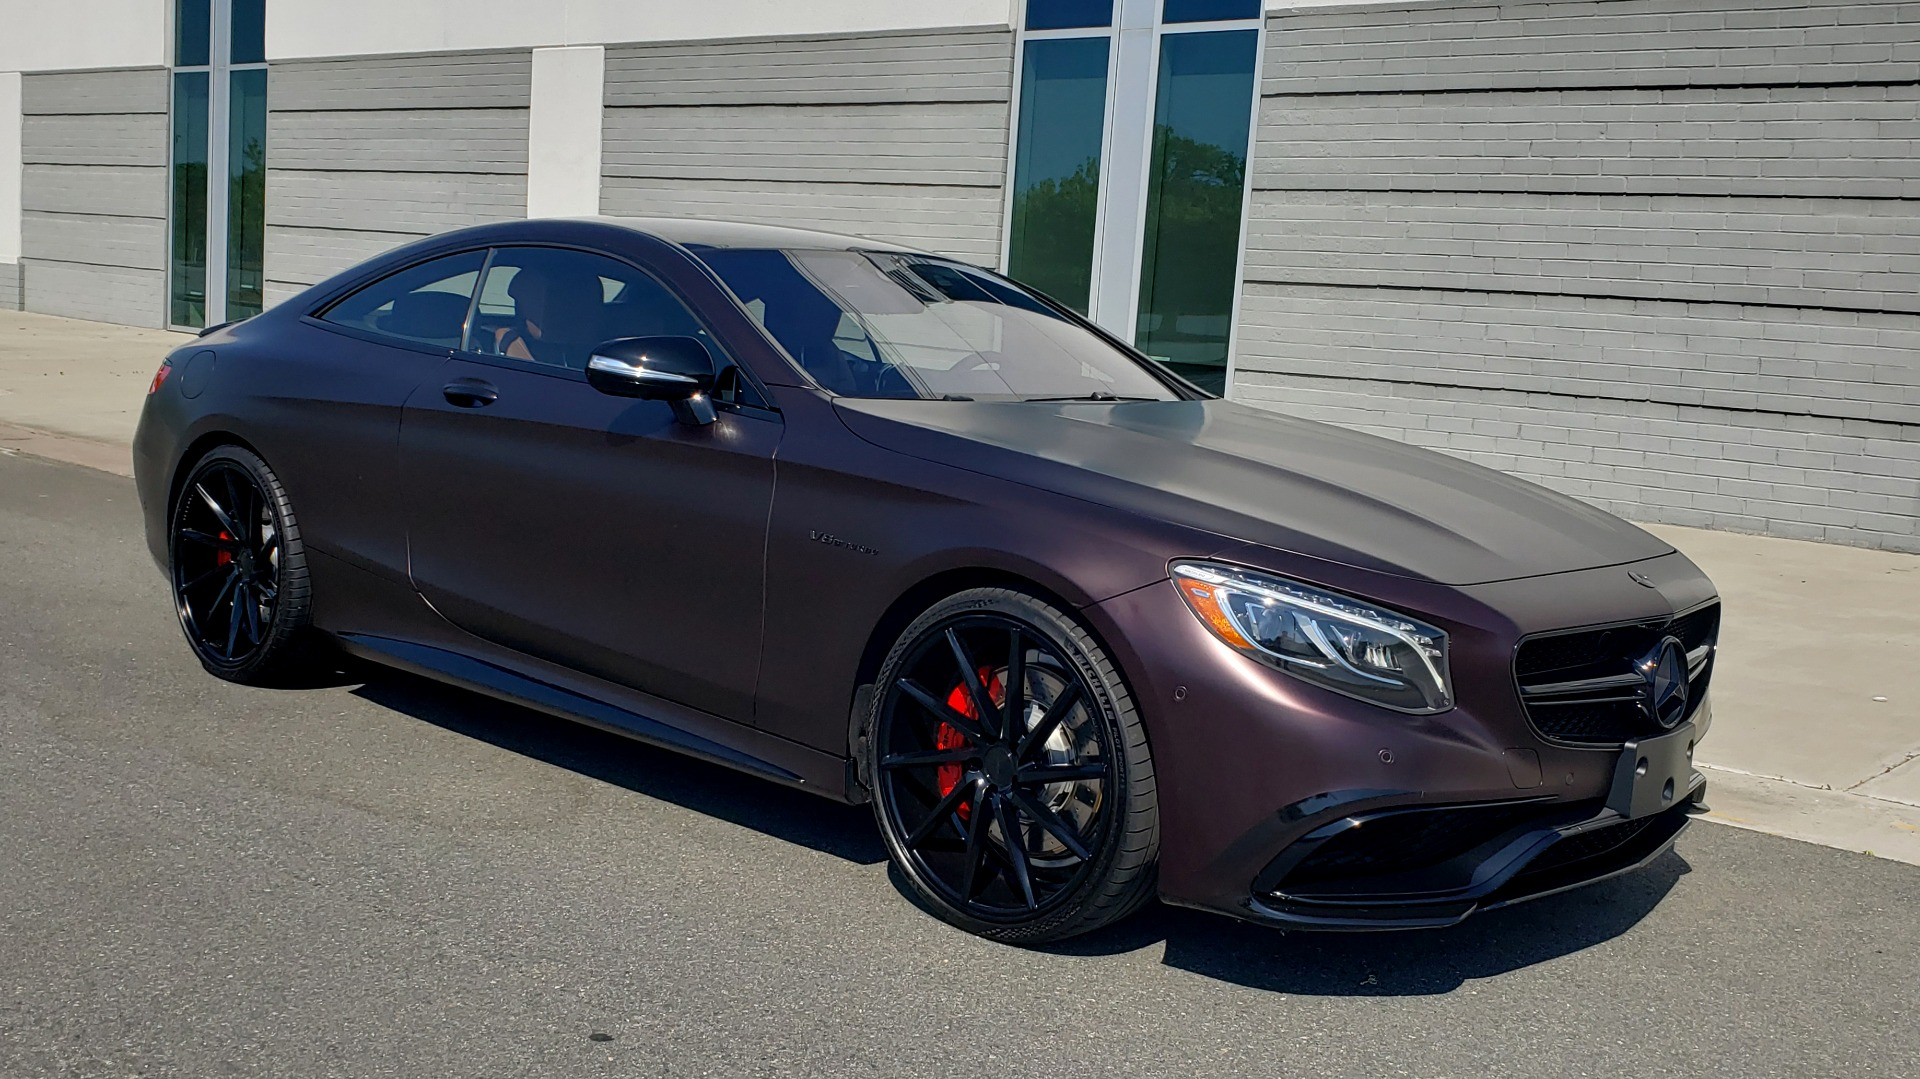 Used 2017 Mercedes-Benz S-CLASS AMG S 63 / NAV / SUNROOF / CUSTOM WRAP / BLACK VOSSEN WHEELS for sale Sold at Formula Imports in Charlotte NC 28227 10